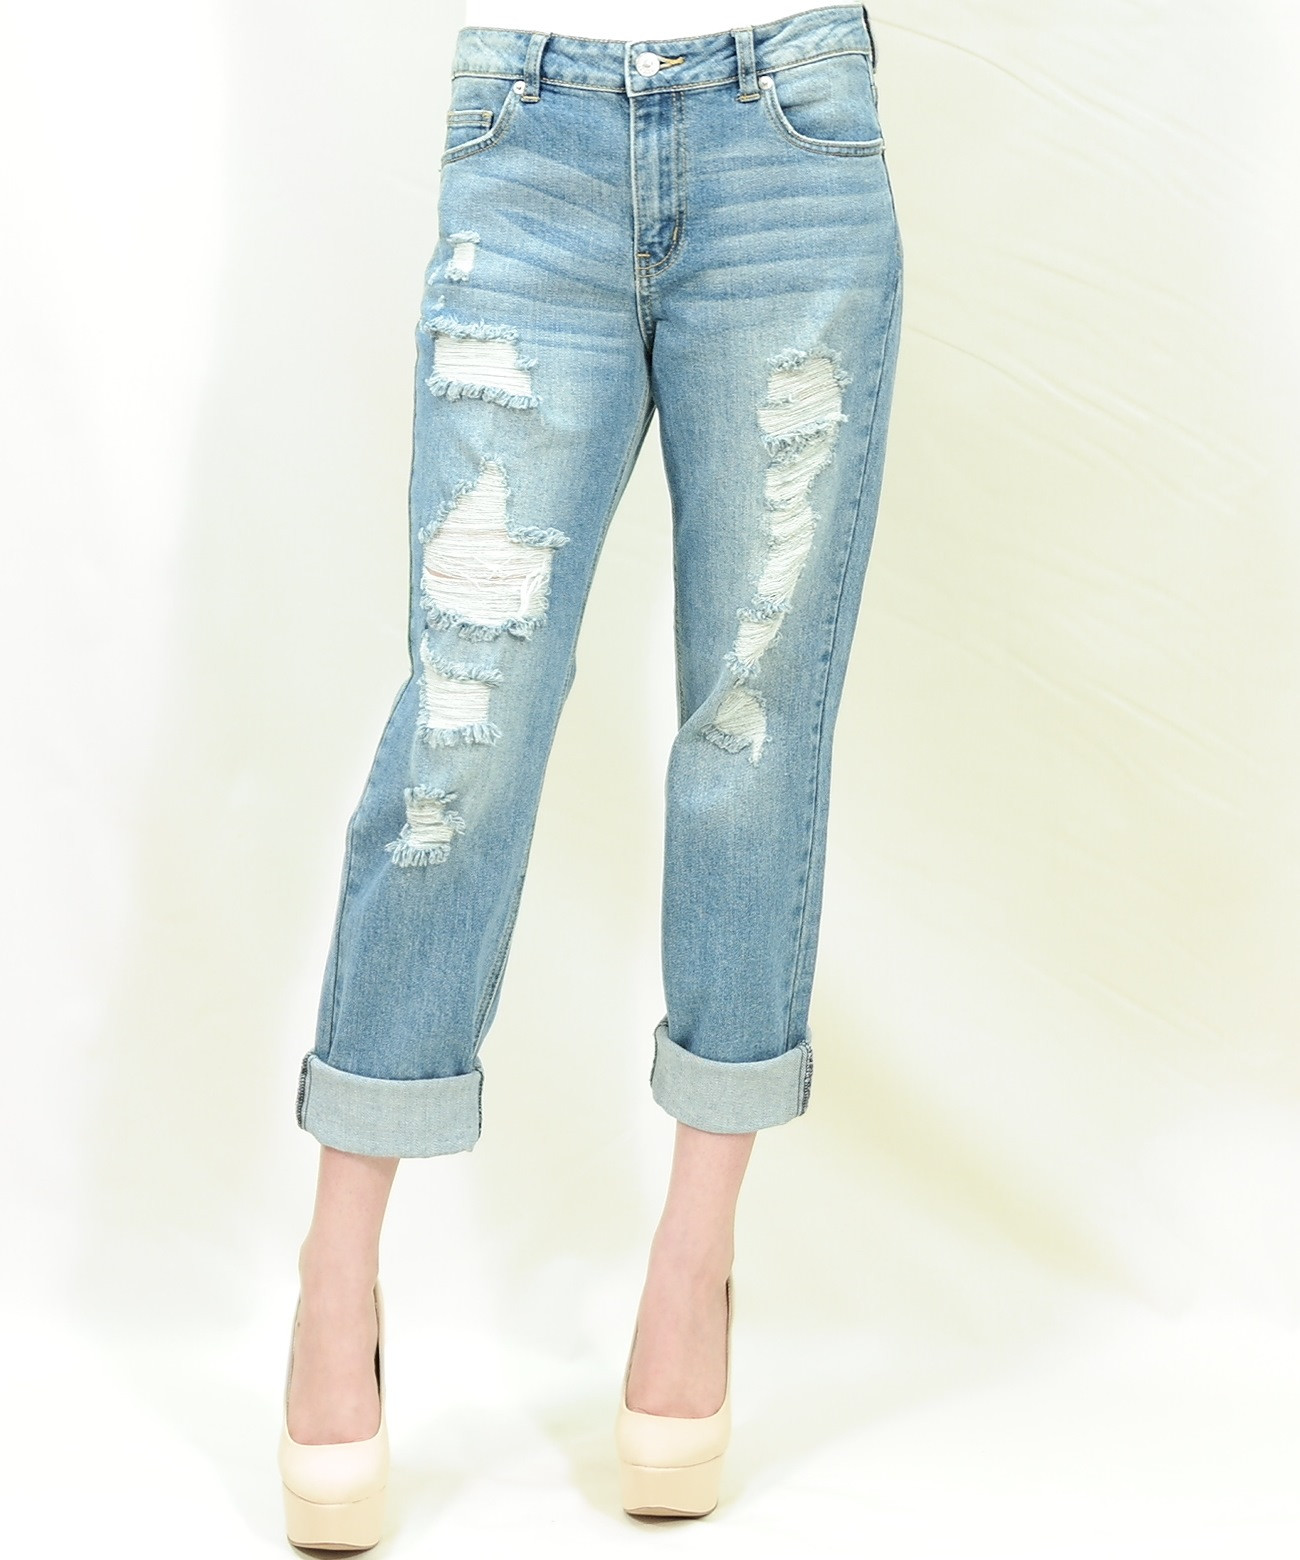 Distressed boyfriend jeans – Pinkracks